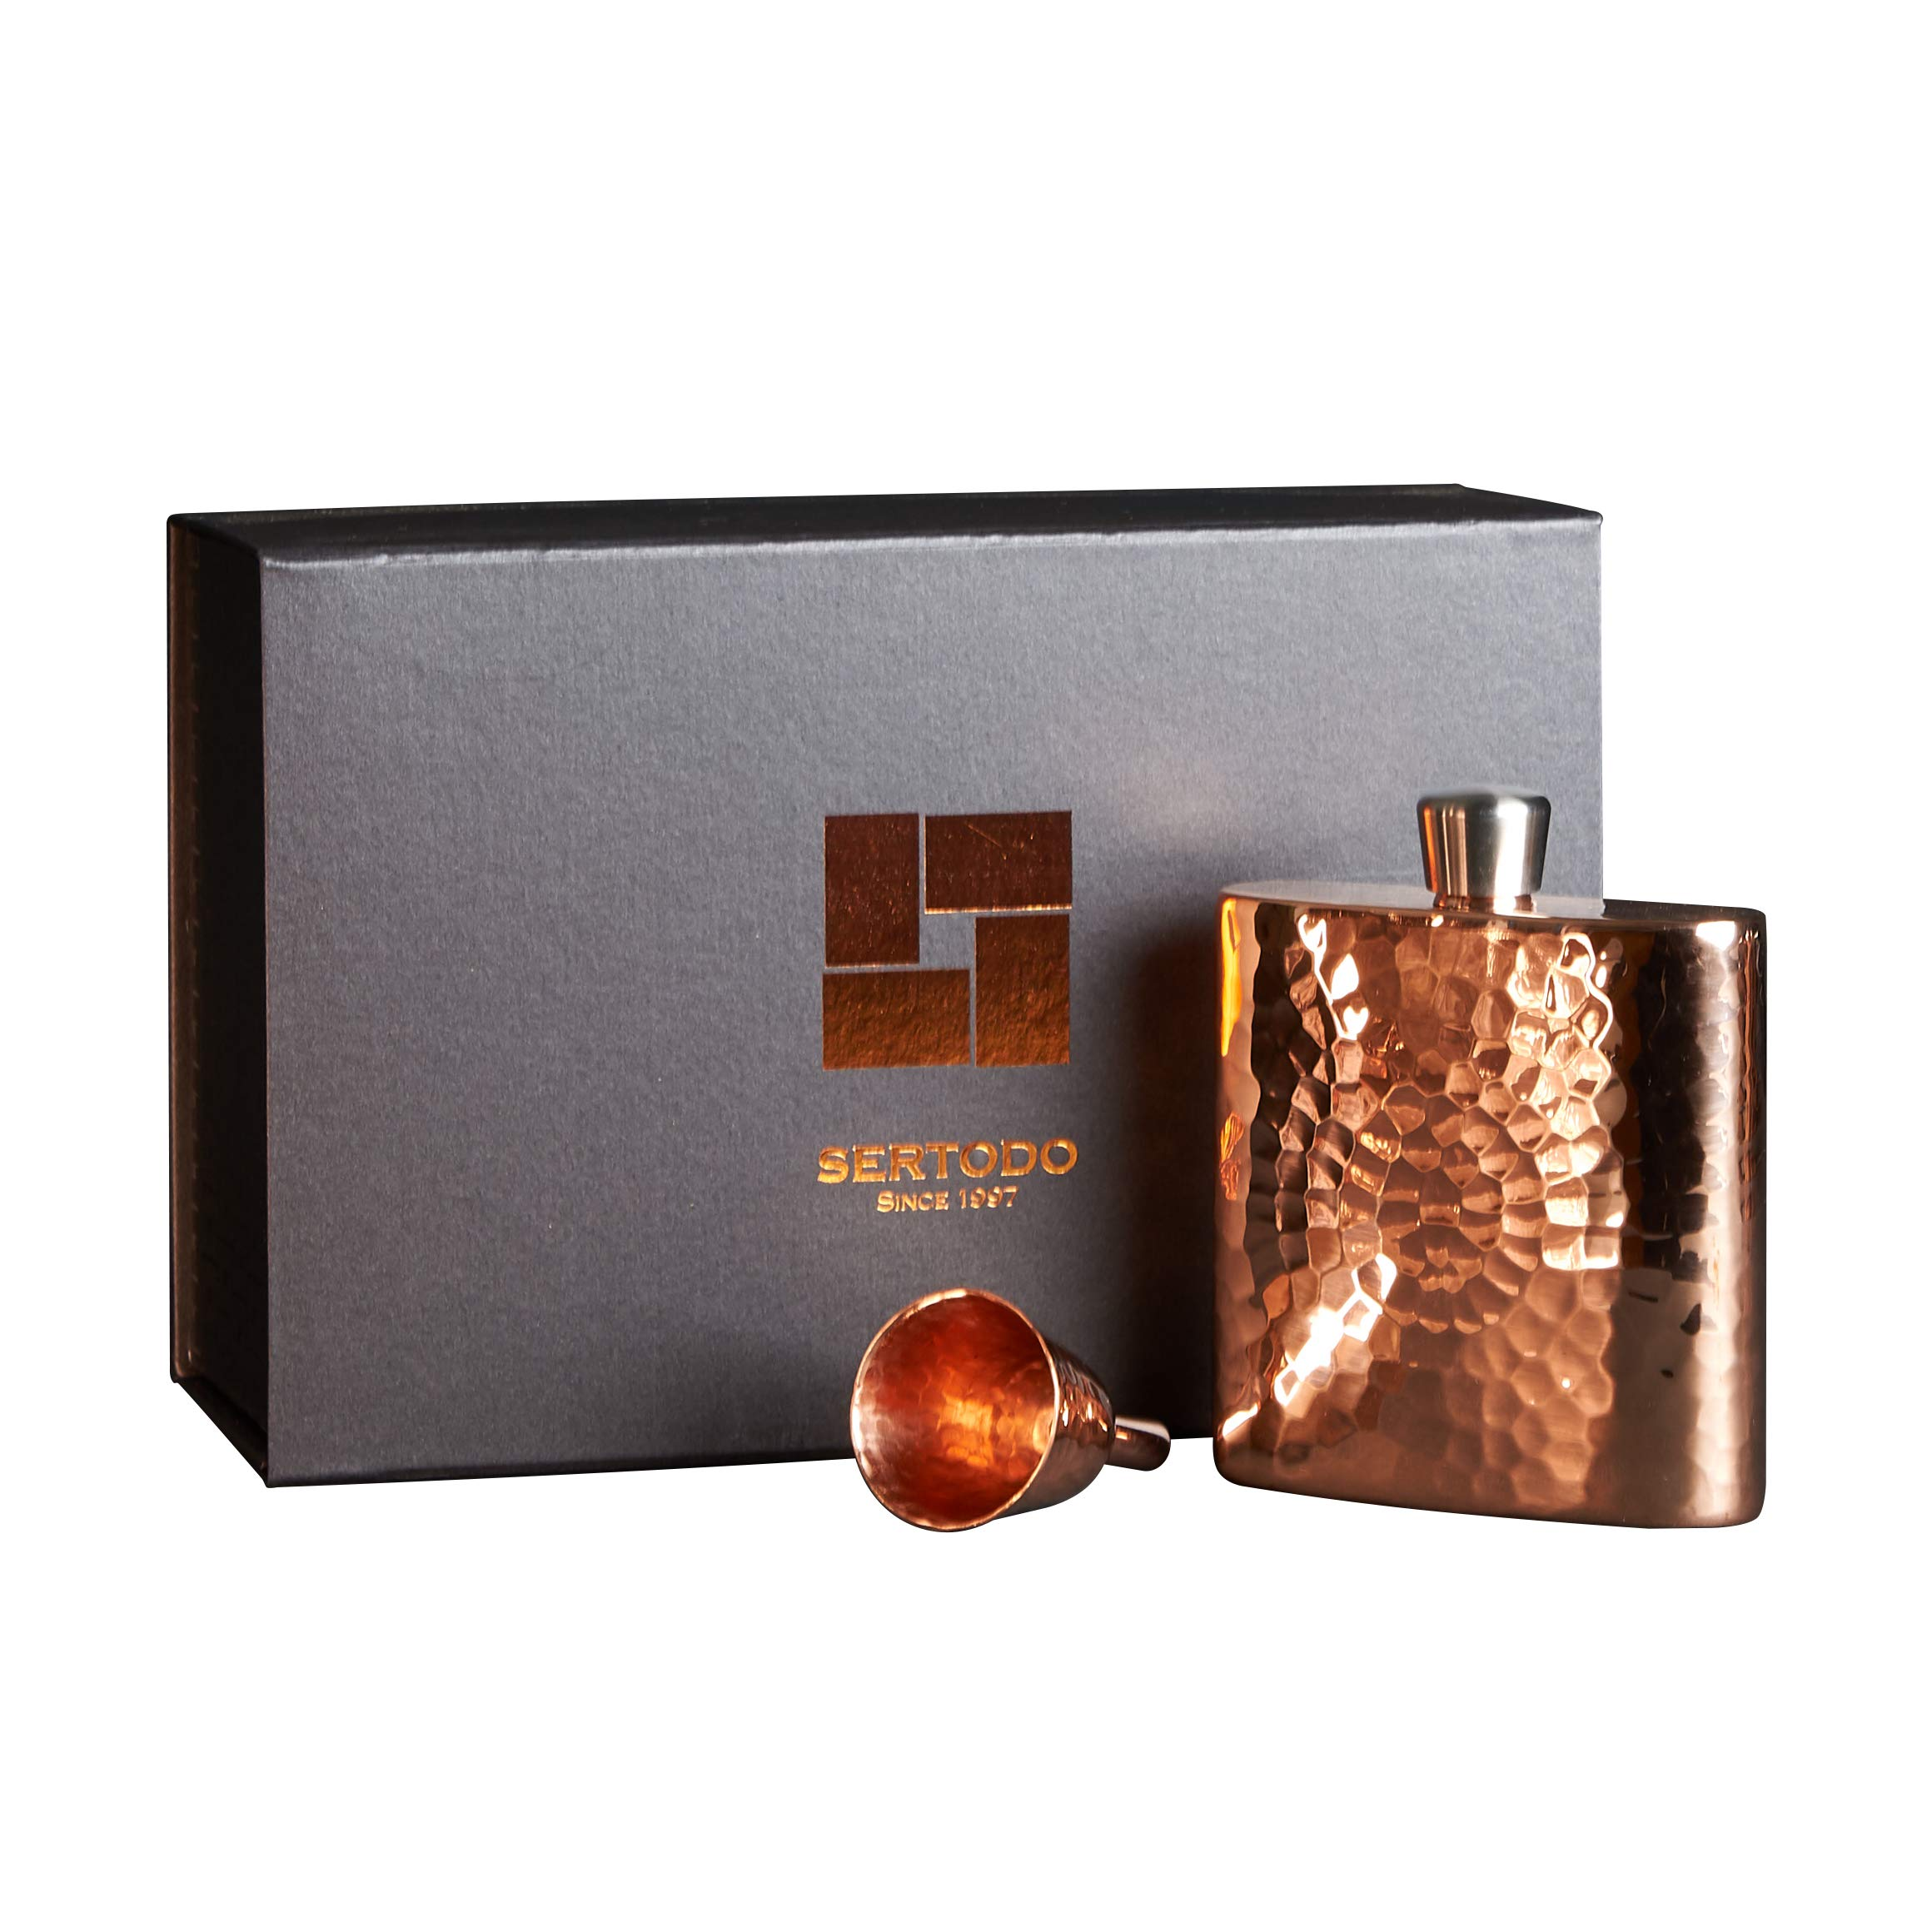 Sertodo Copper FLSK-ESP-4x4 Espadín Square Flask with Funnel & Gift Box, Hand Hammered 100% Pure Copper, 9 oz by Sertodo Copper (Image #1)